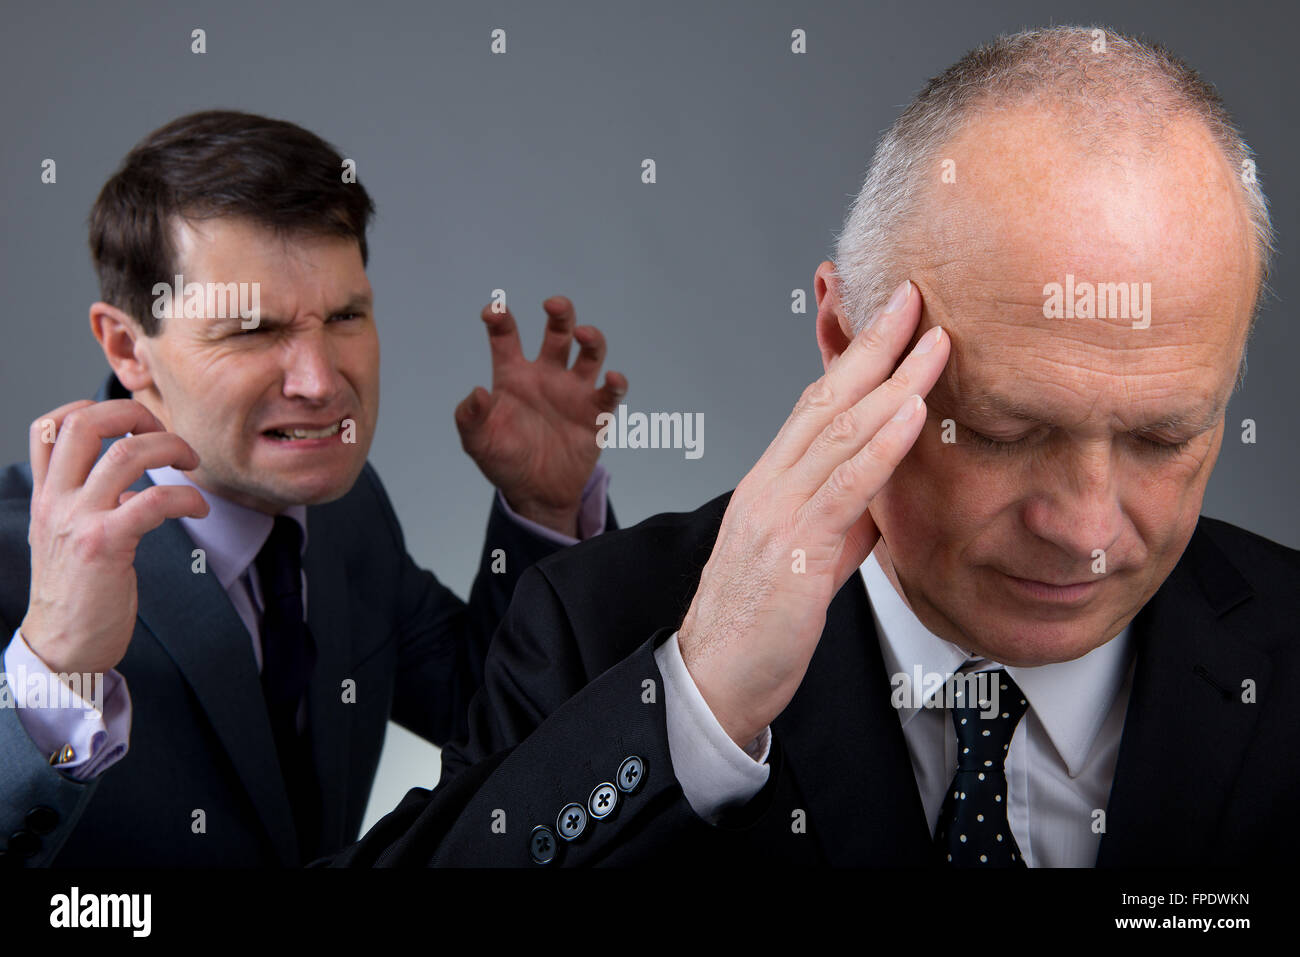 Calm/pensive businessman in the foreground, with angry/frustrated work colleague behind him. - Stock Image